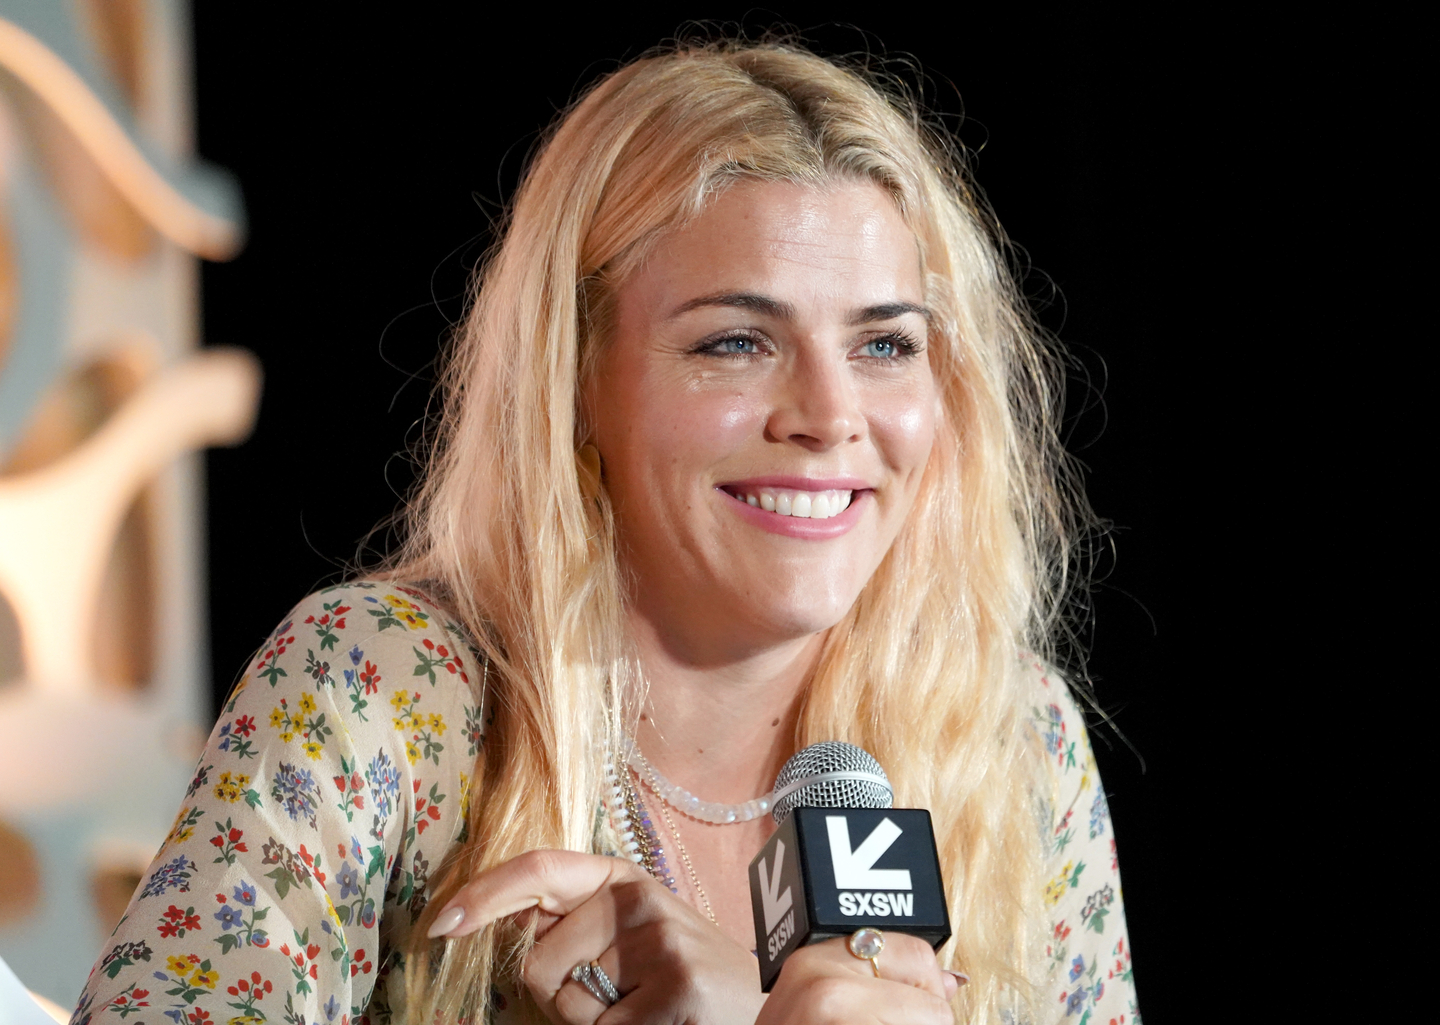 Busy Philipps speaks onstage with Hillary Kerr during a Featured Session. Photo by Amy E. Price/Getty Images for SXSW